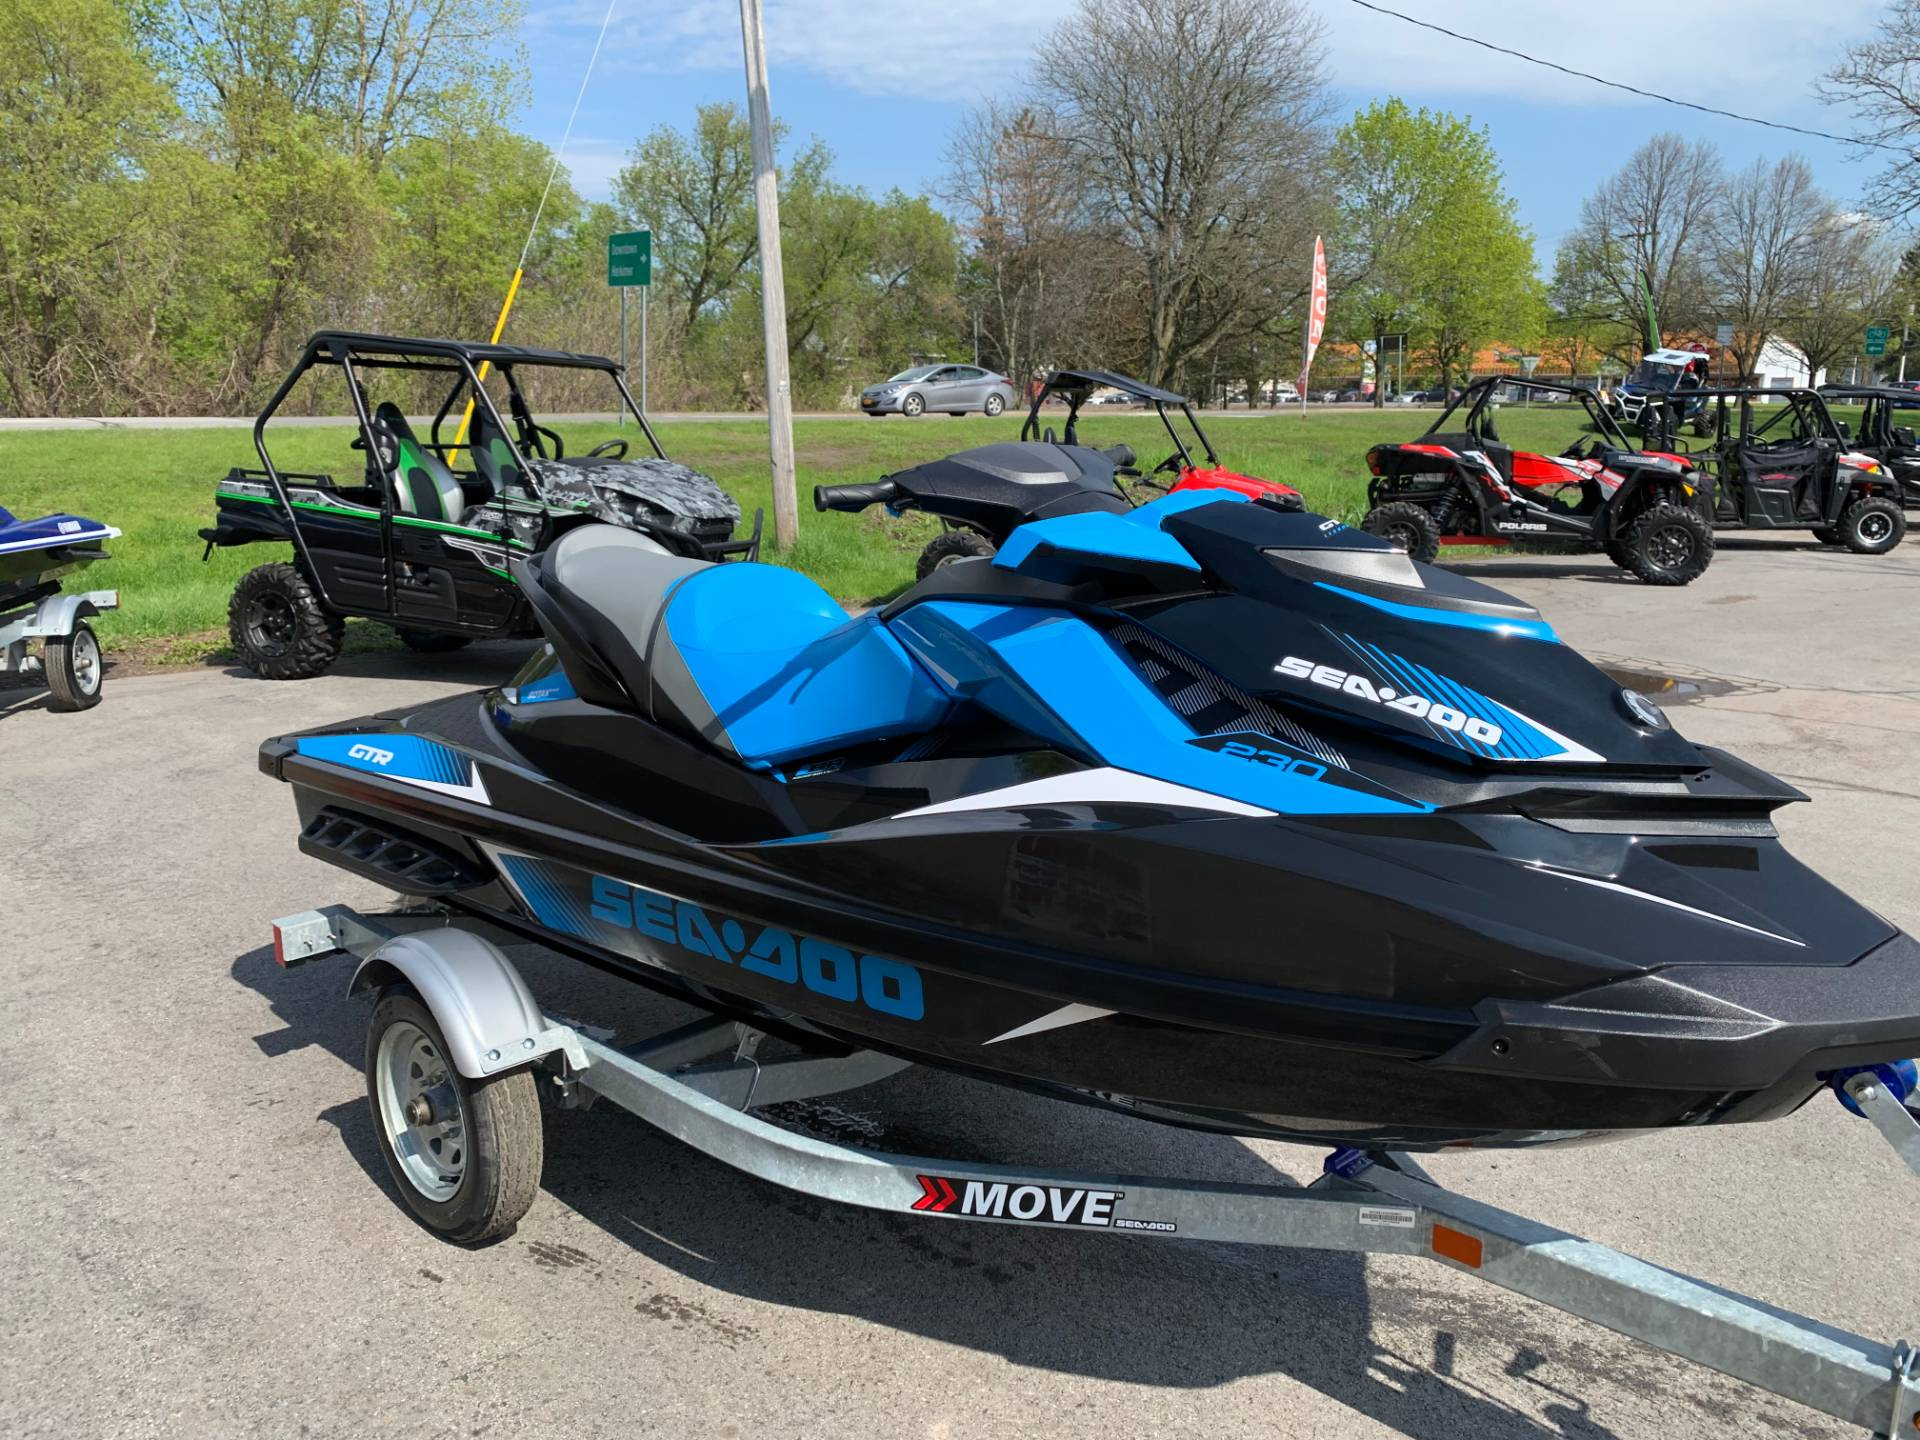 2018 Sea-Doo GTR 230 in Herkimer, New York - Photo 7